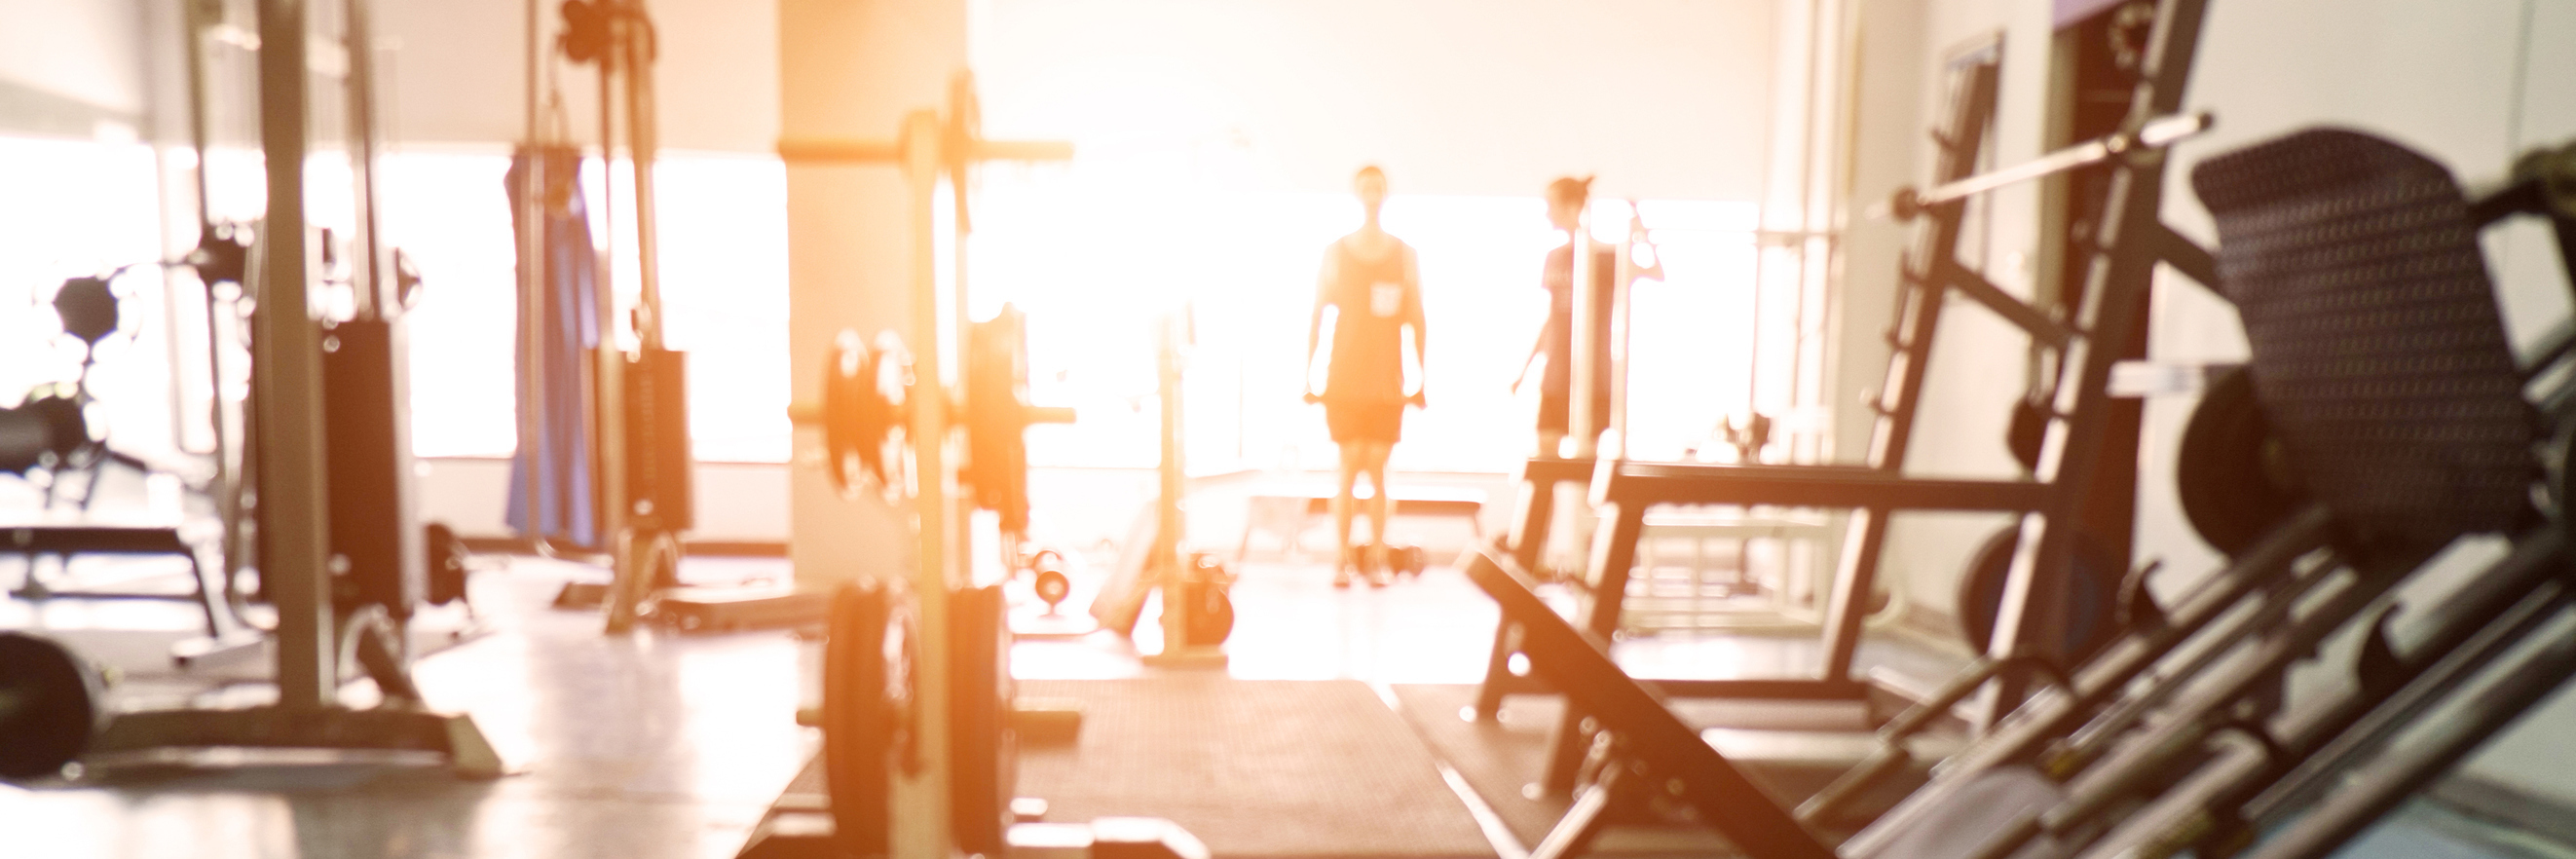 Blurred background of gym.